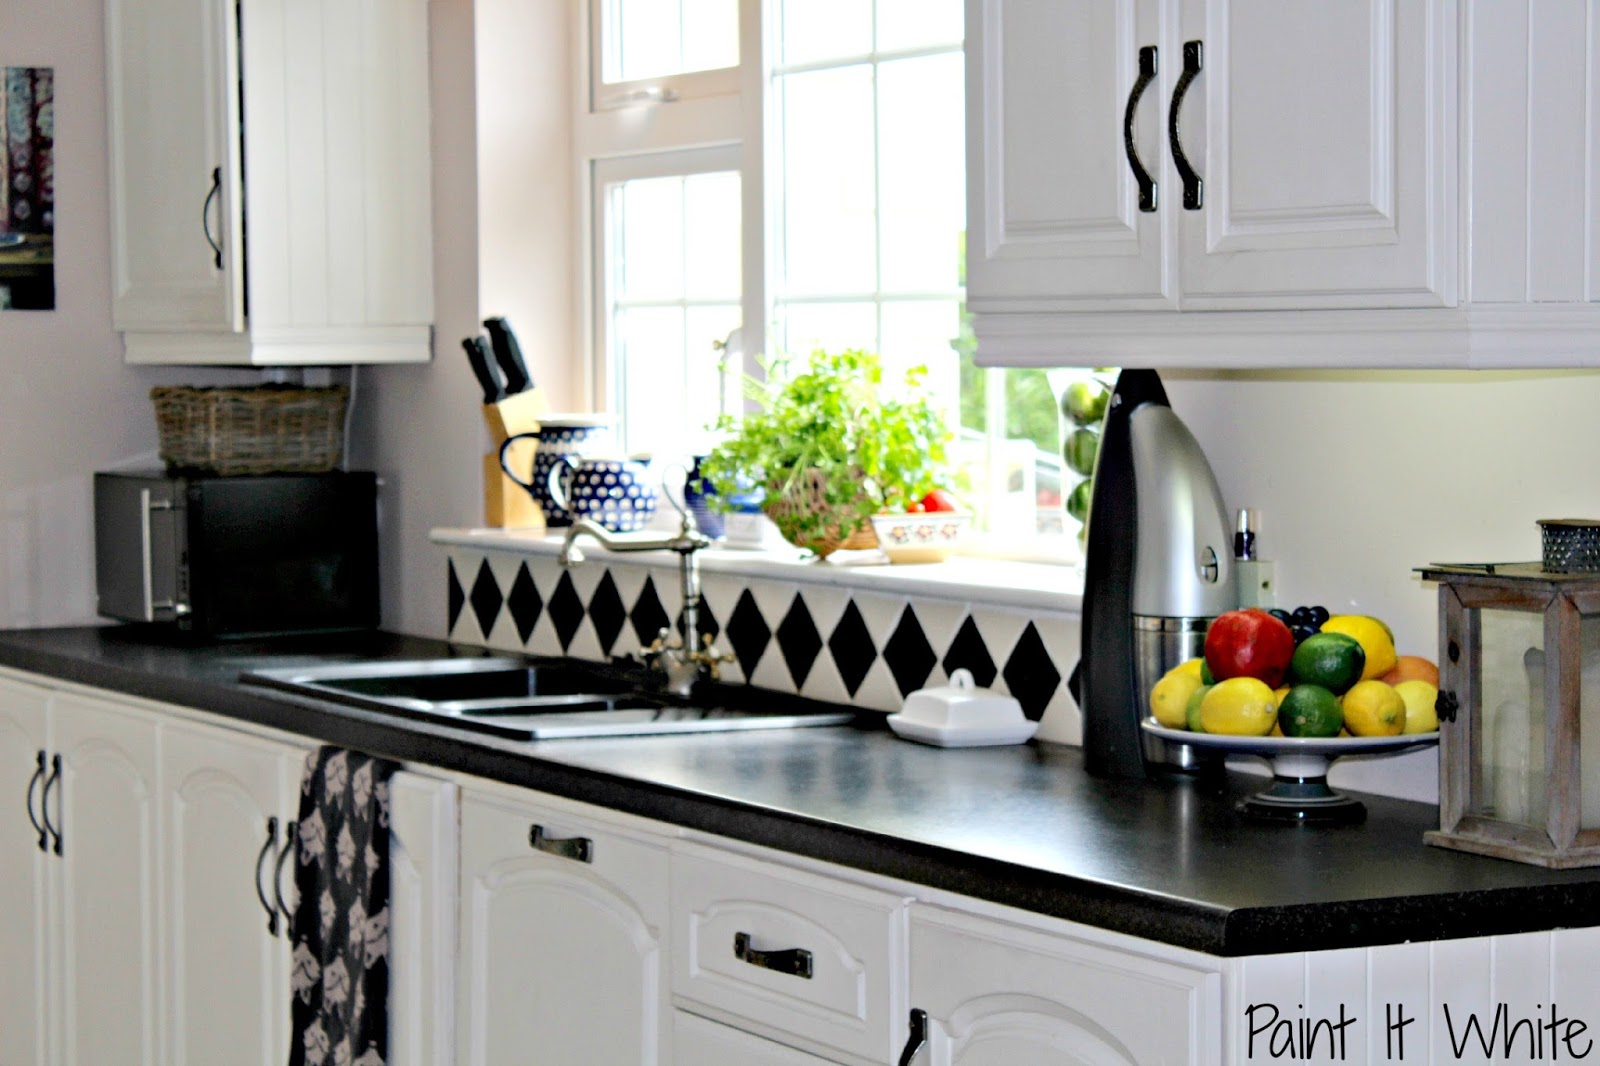 1 Chalk painted cabinets in rustic white kitchen, Paint it White featured  on @Remodelaholic